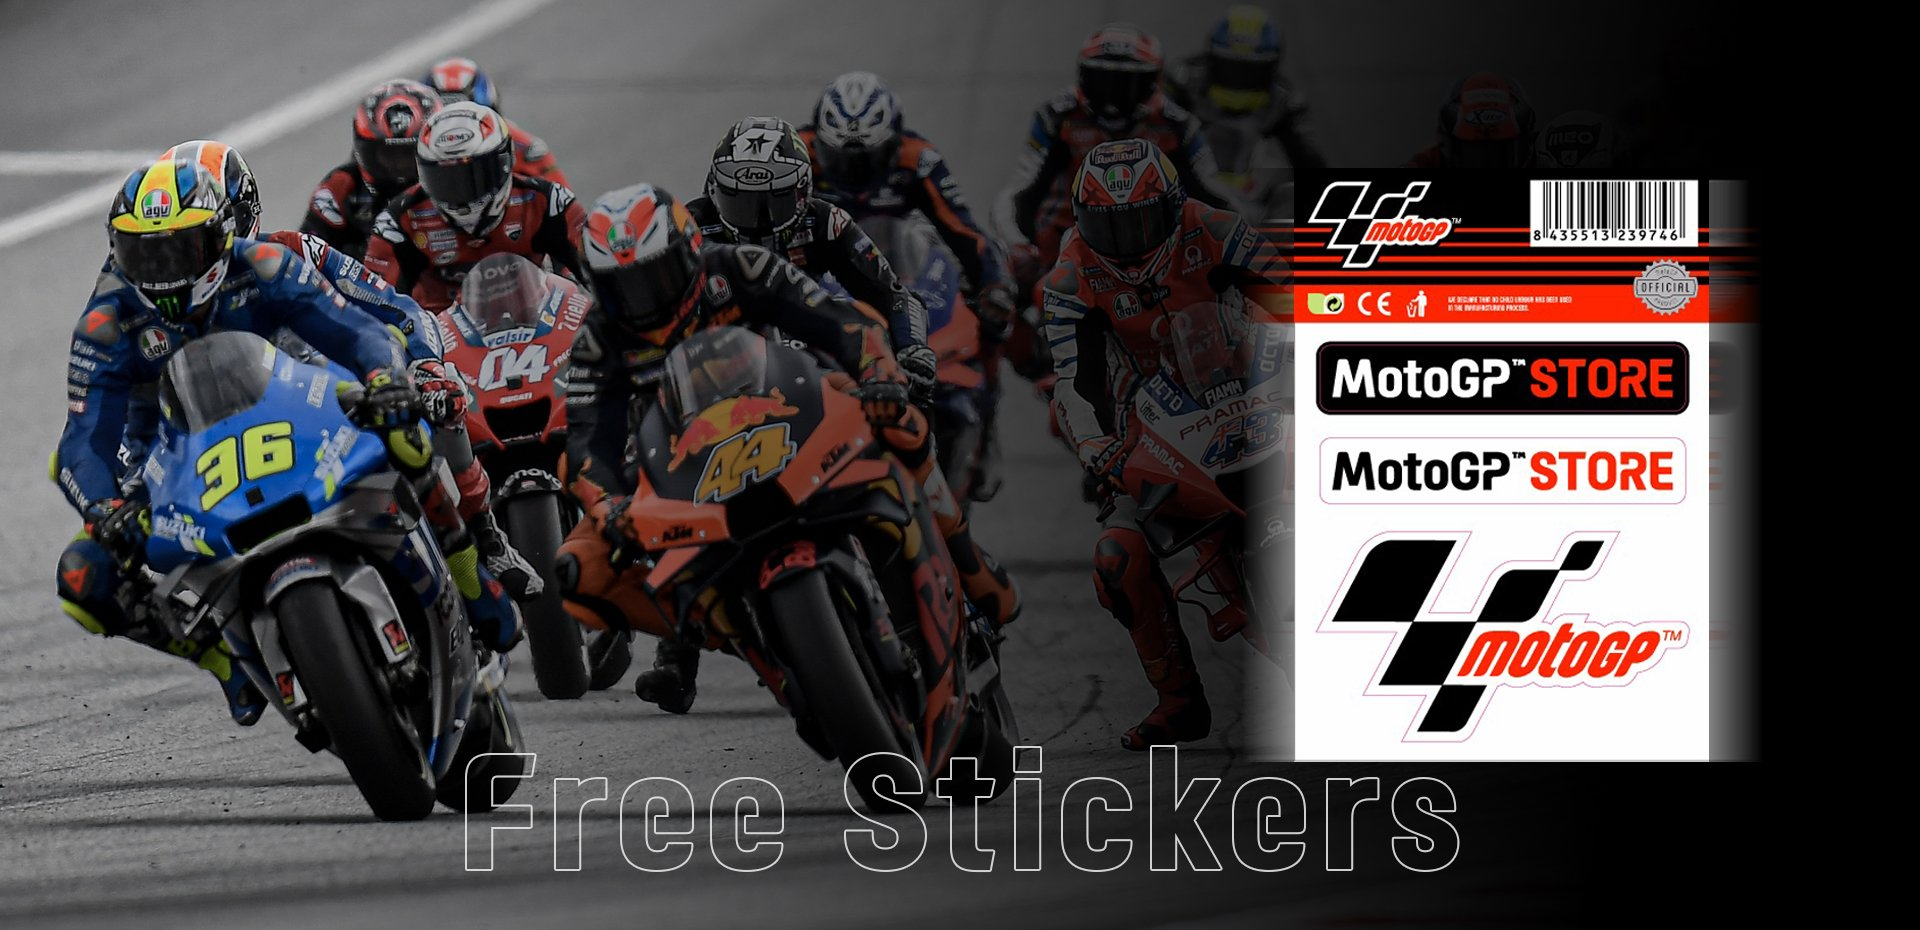 Free MotoGP™ Store Store Stickers in every order